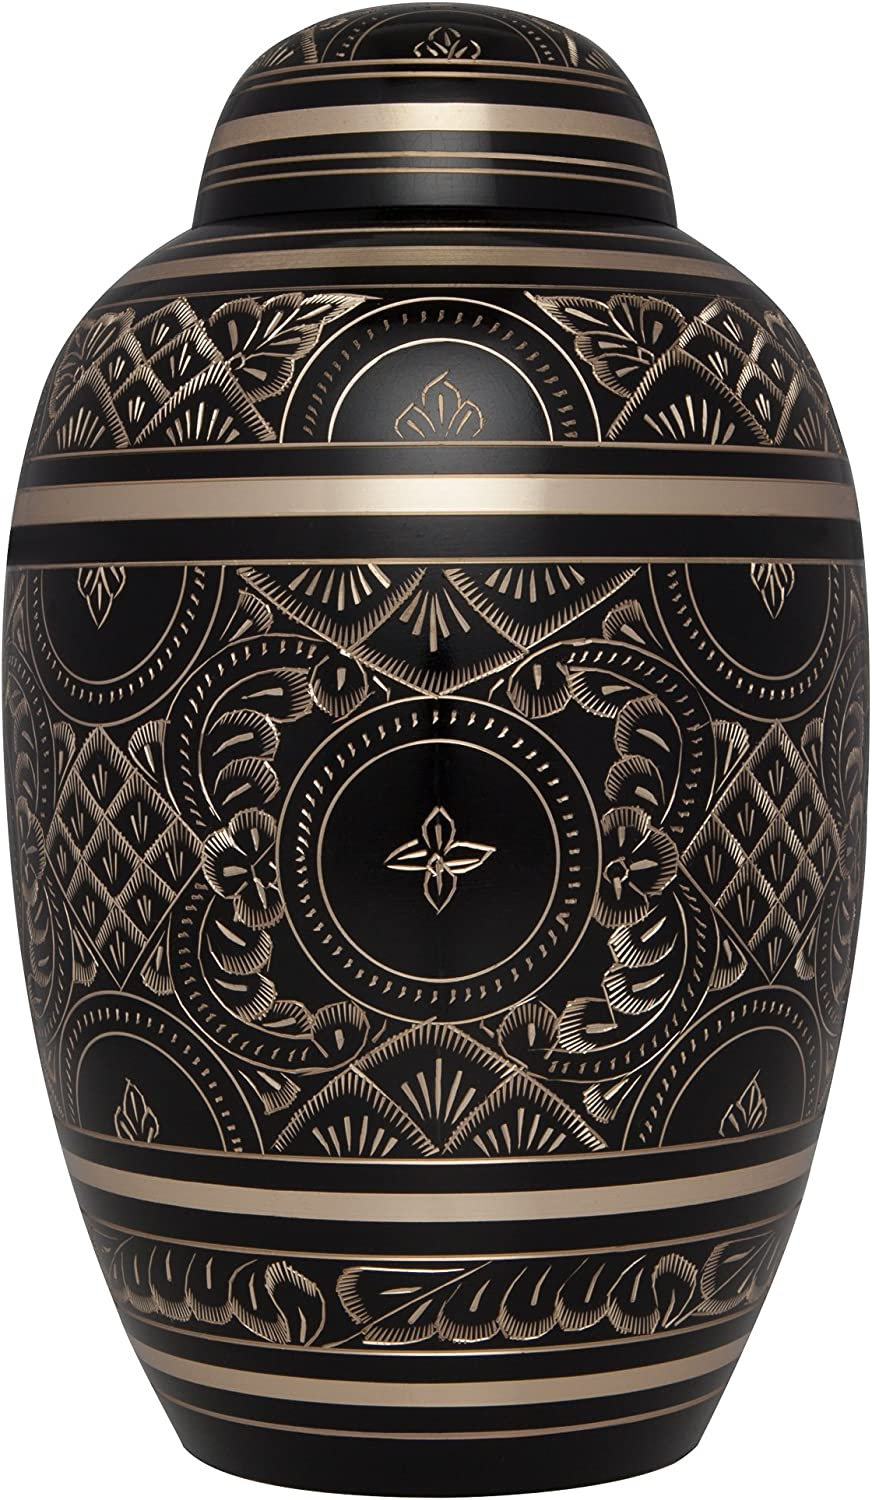 Black Cremation Max 45% OFF Urn for Human Ashes M Max 86% OFF Hand Engraving Gold - with